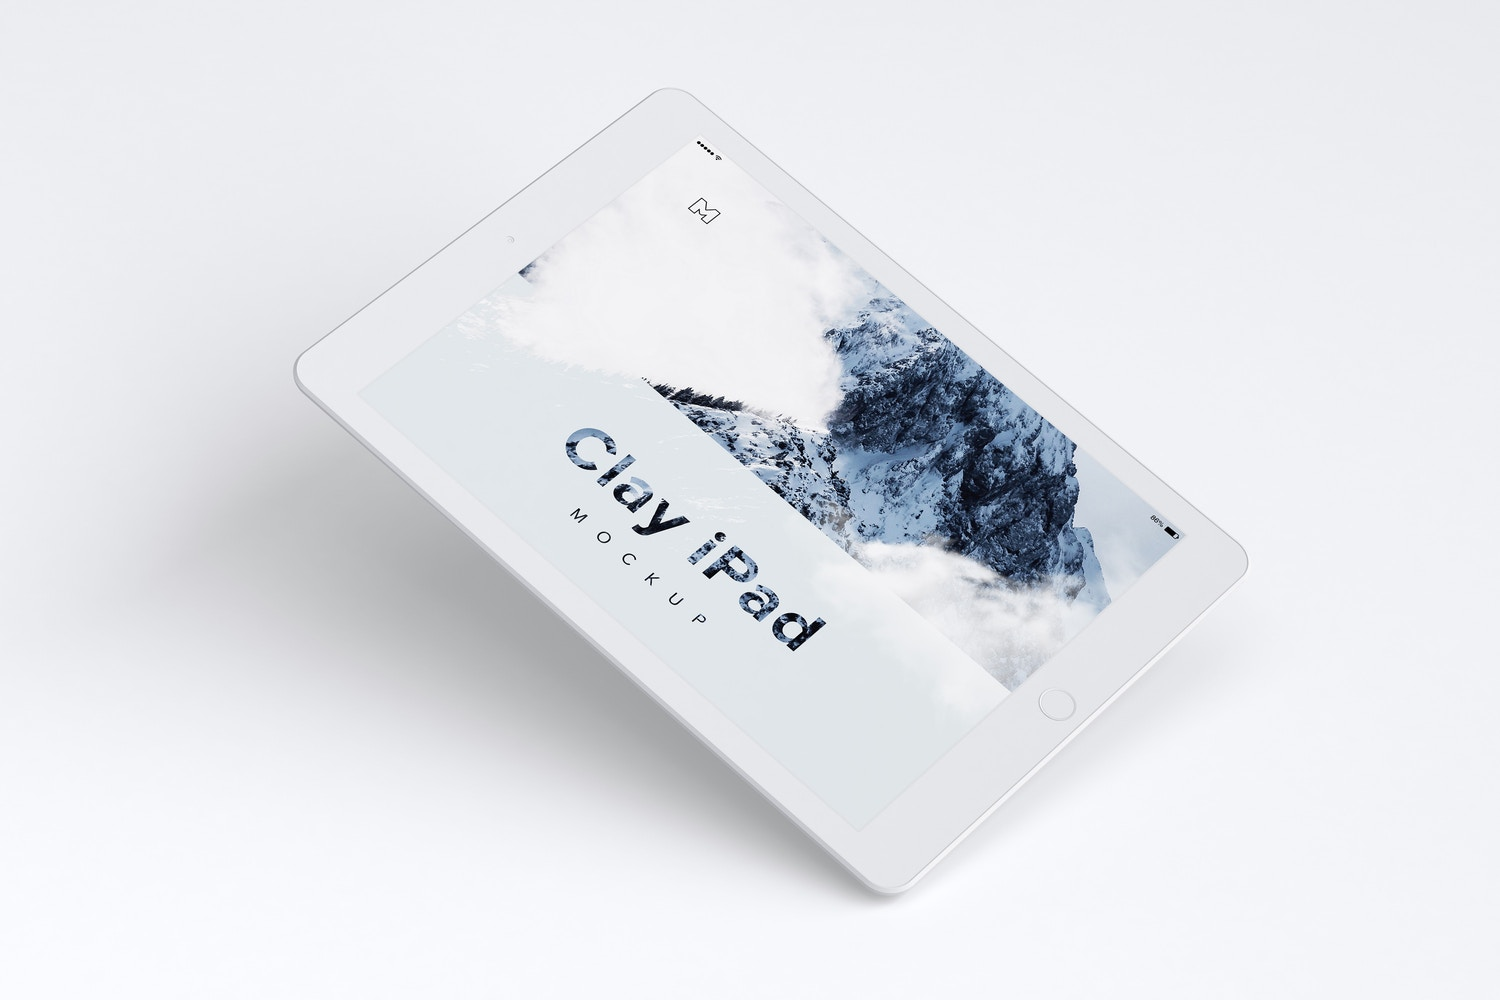 Clay iPad 9.7 Mockup 01 by Original Mockups on Original Mockups